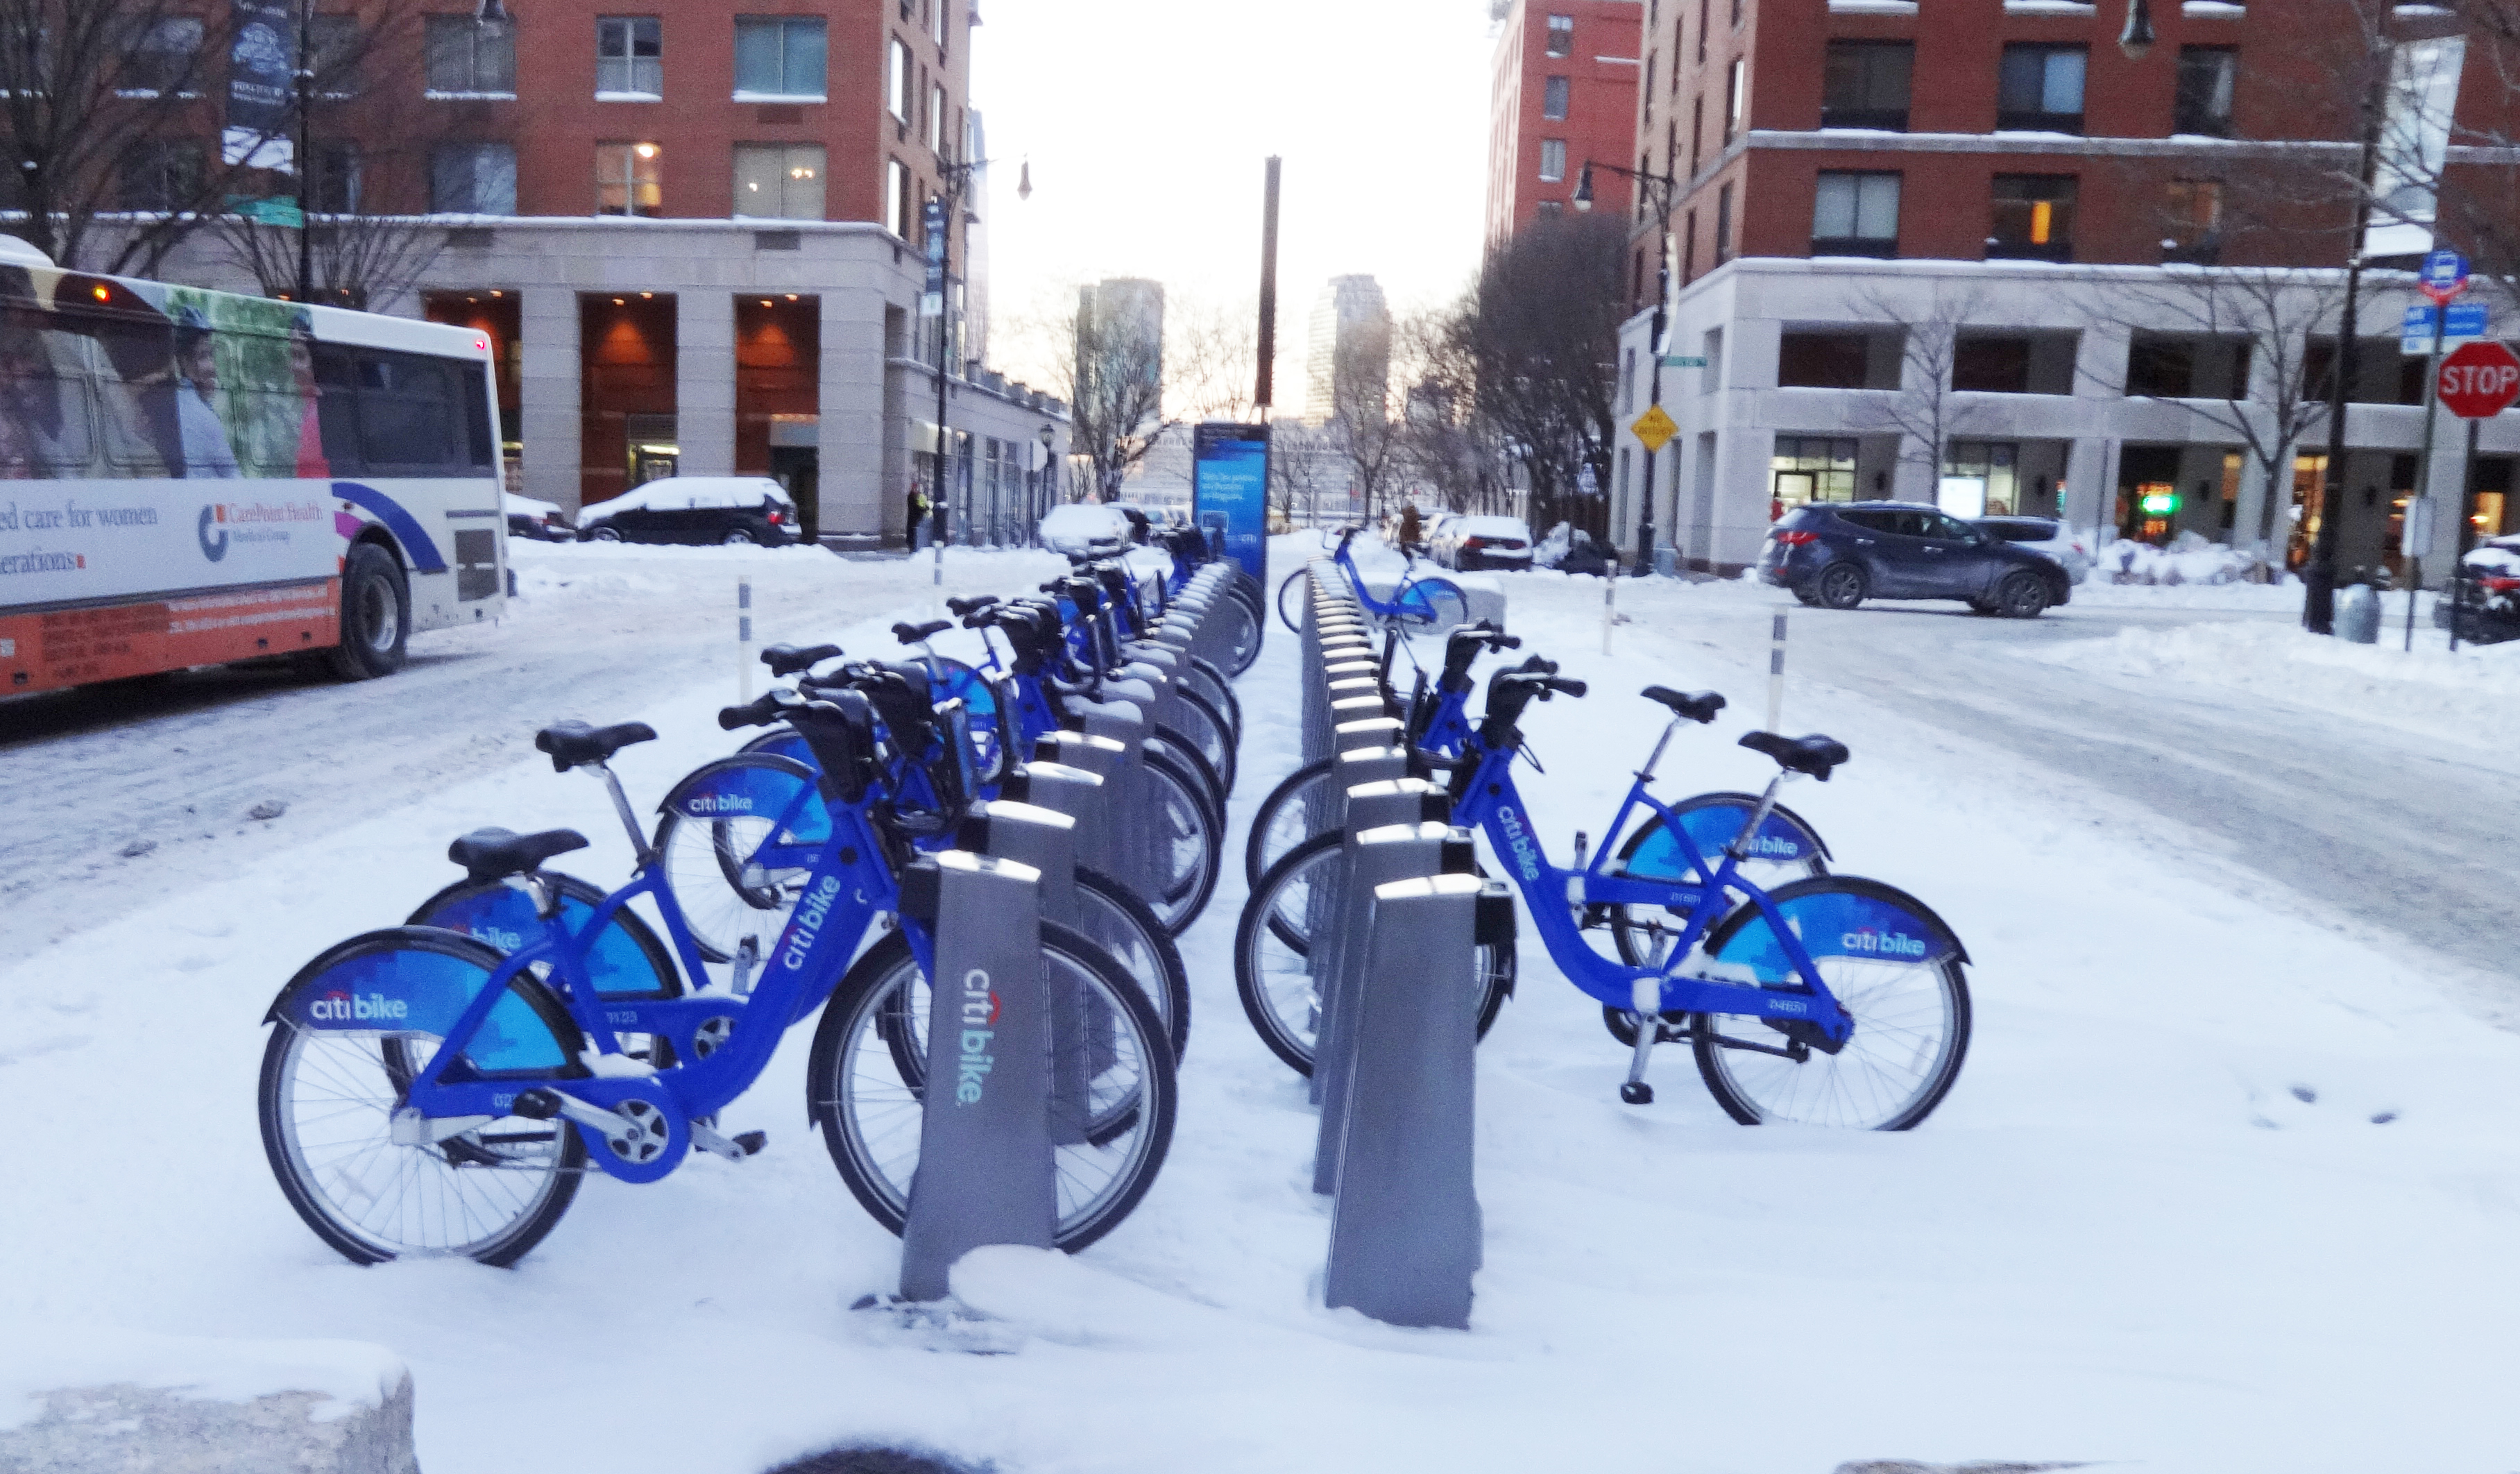 Citi Bikes in snow